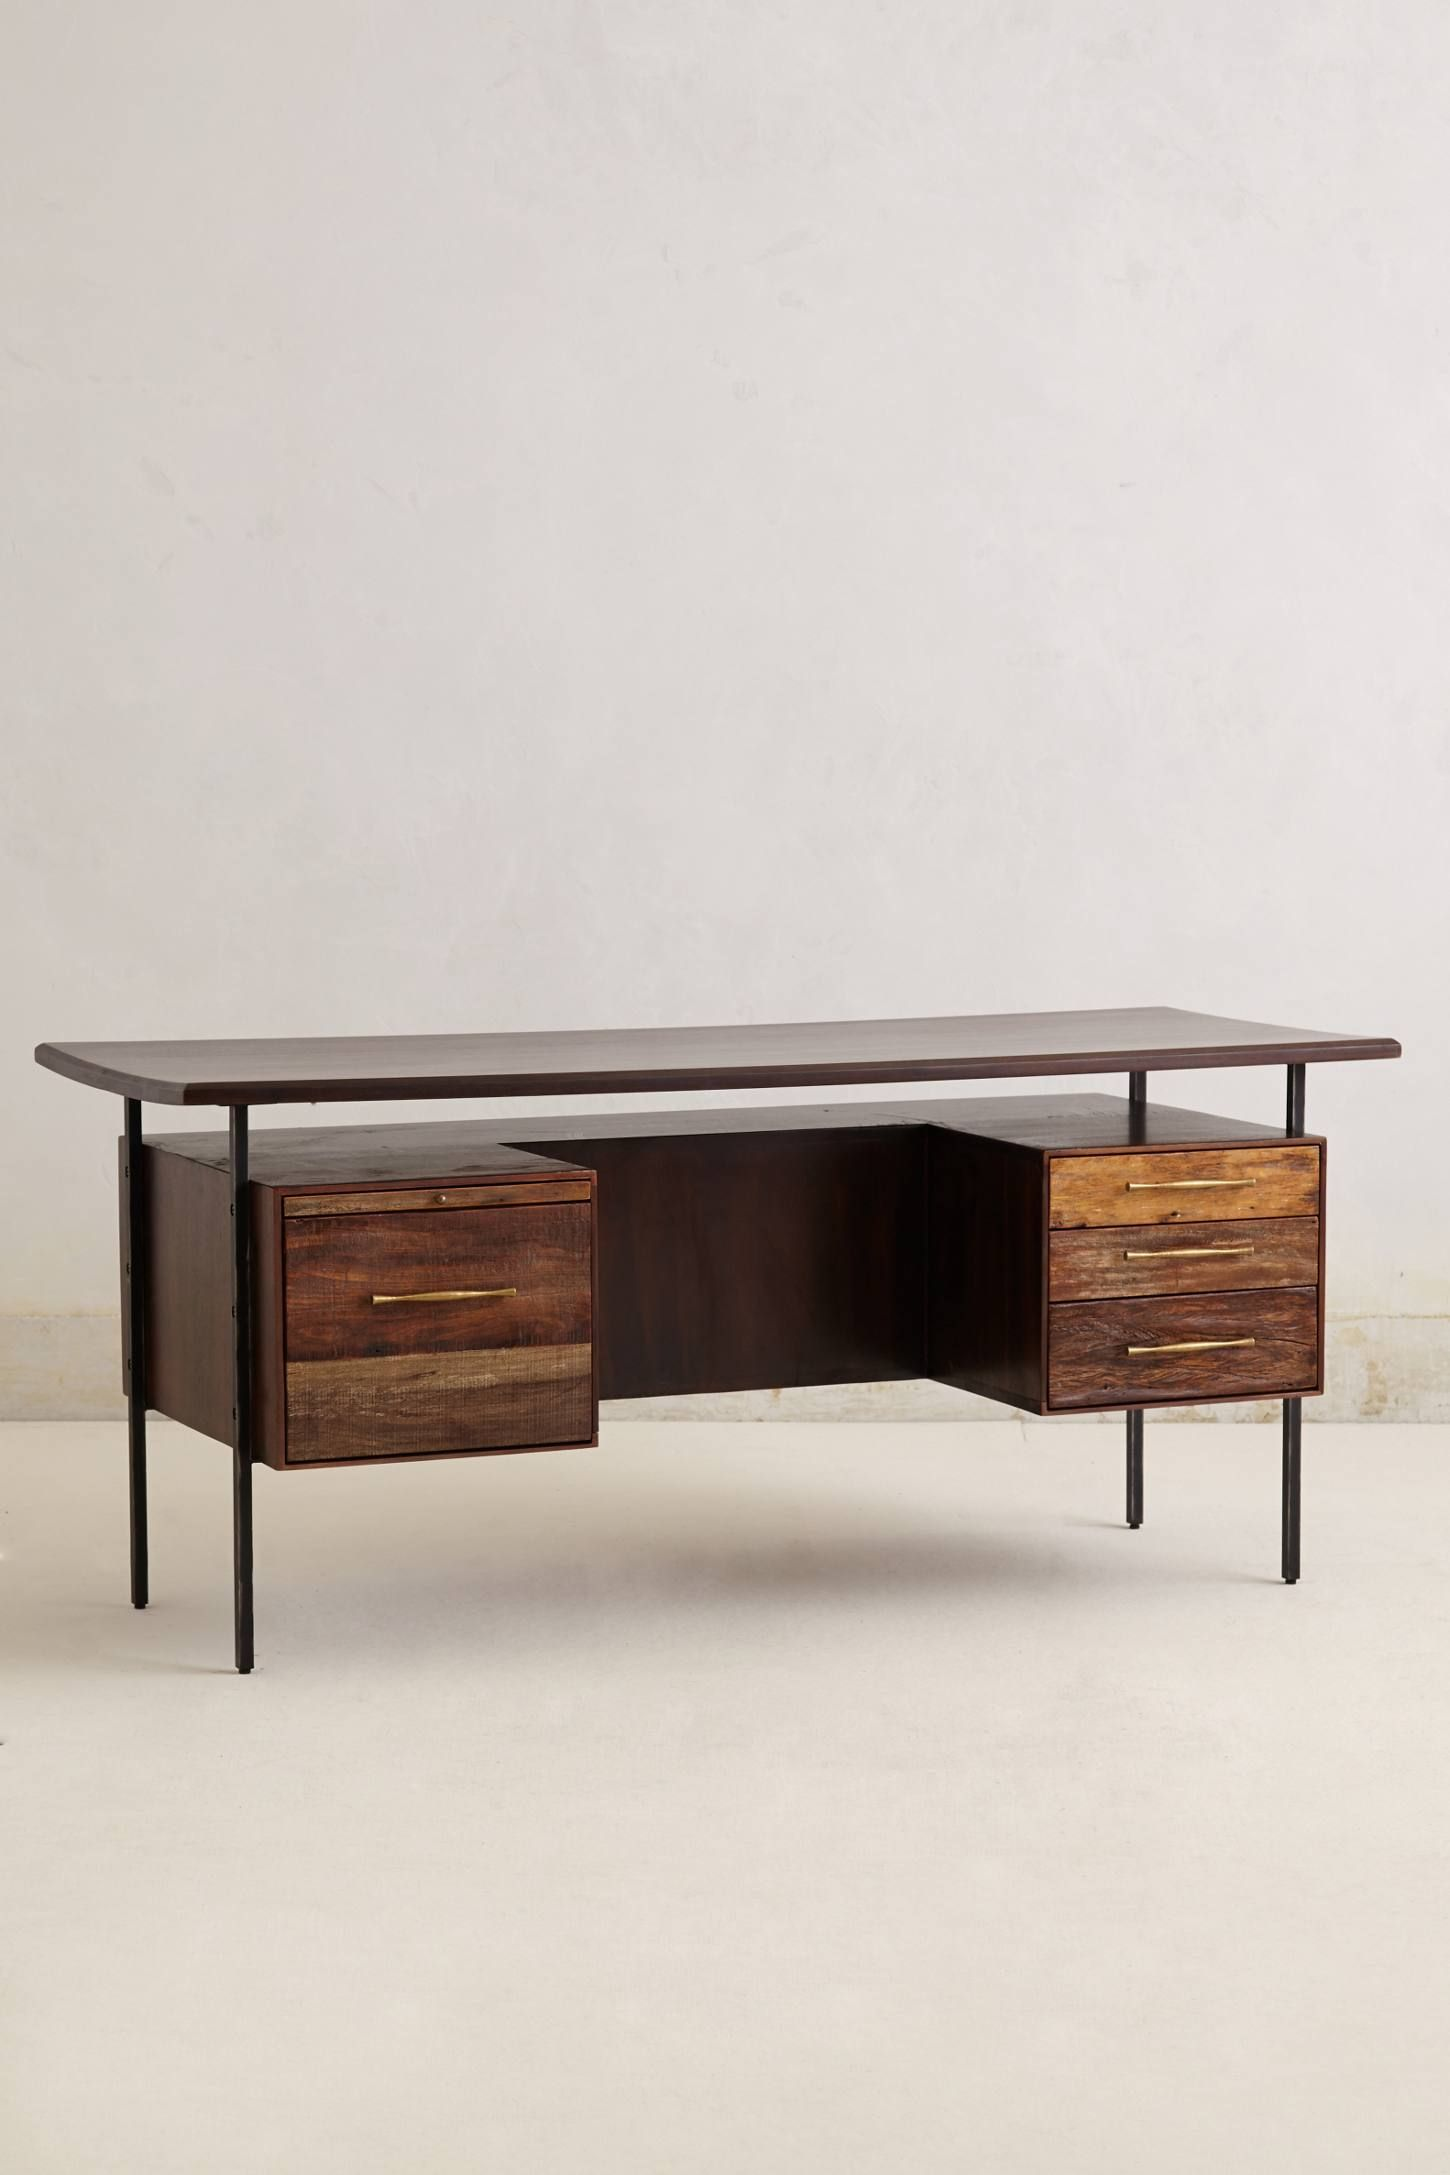 plan rustic office furniture. Rustic Wood Desk - Anthropologie.com Plan Office Furniture T